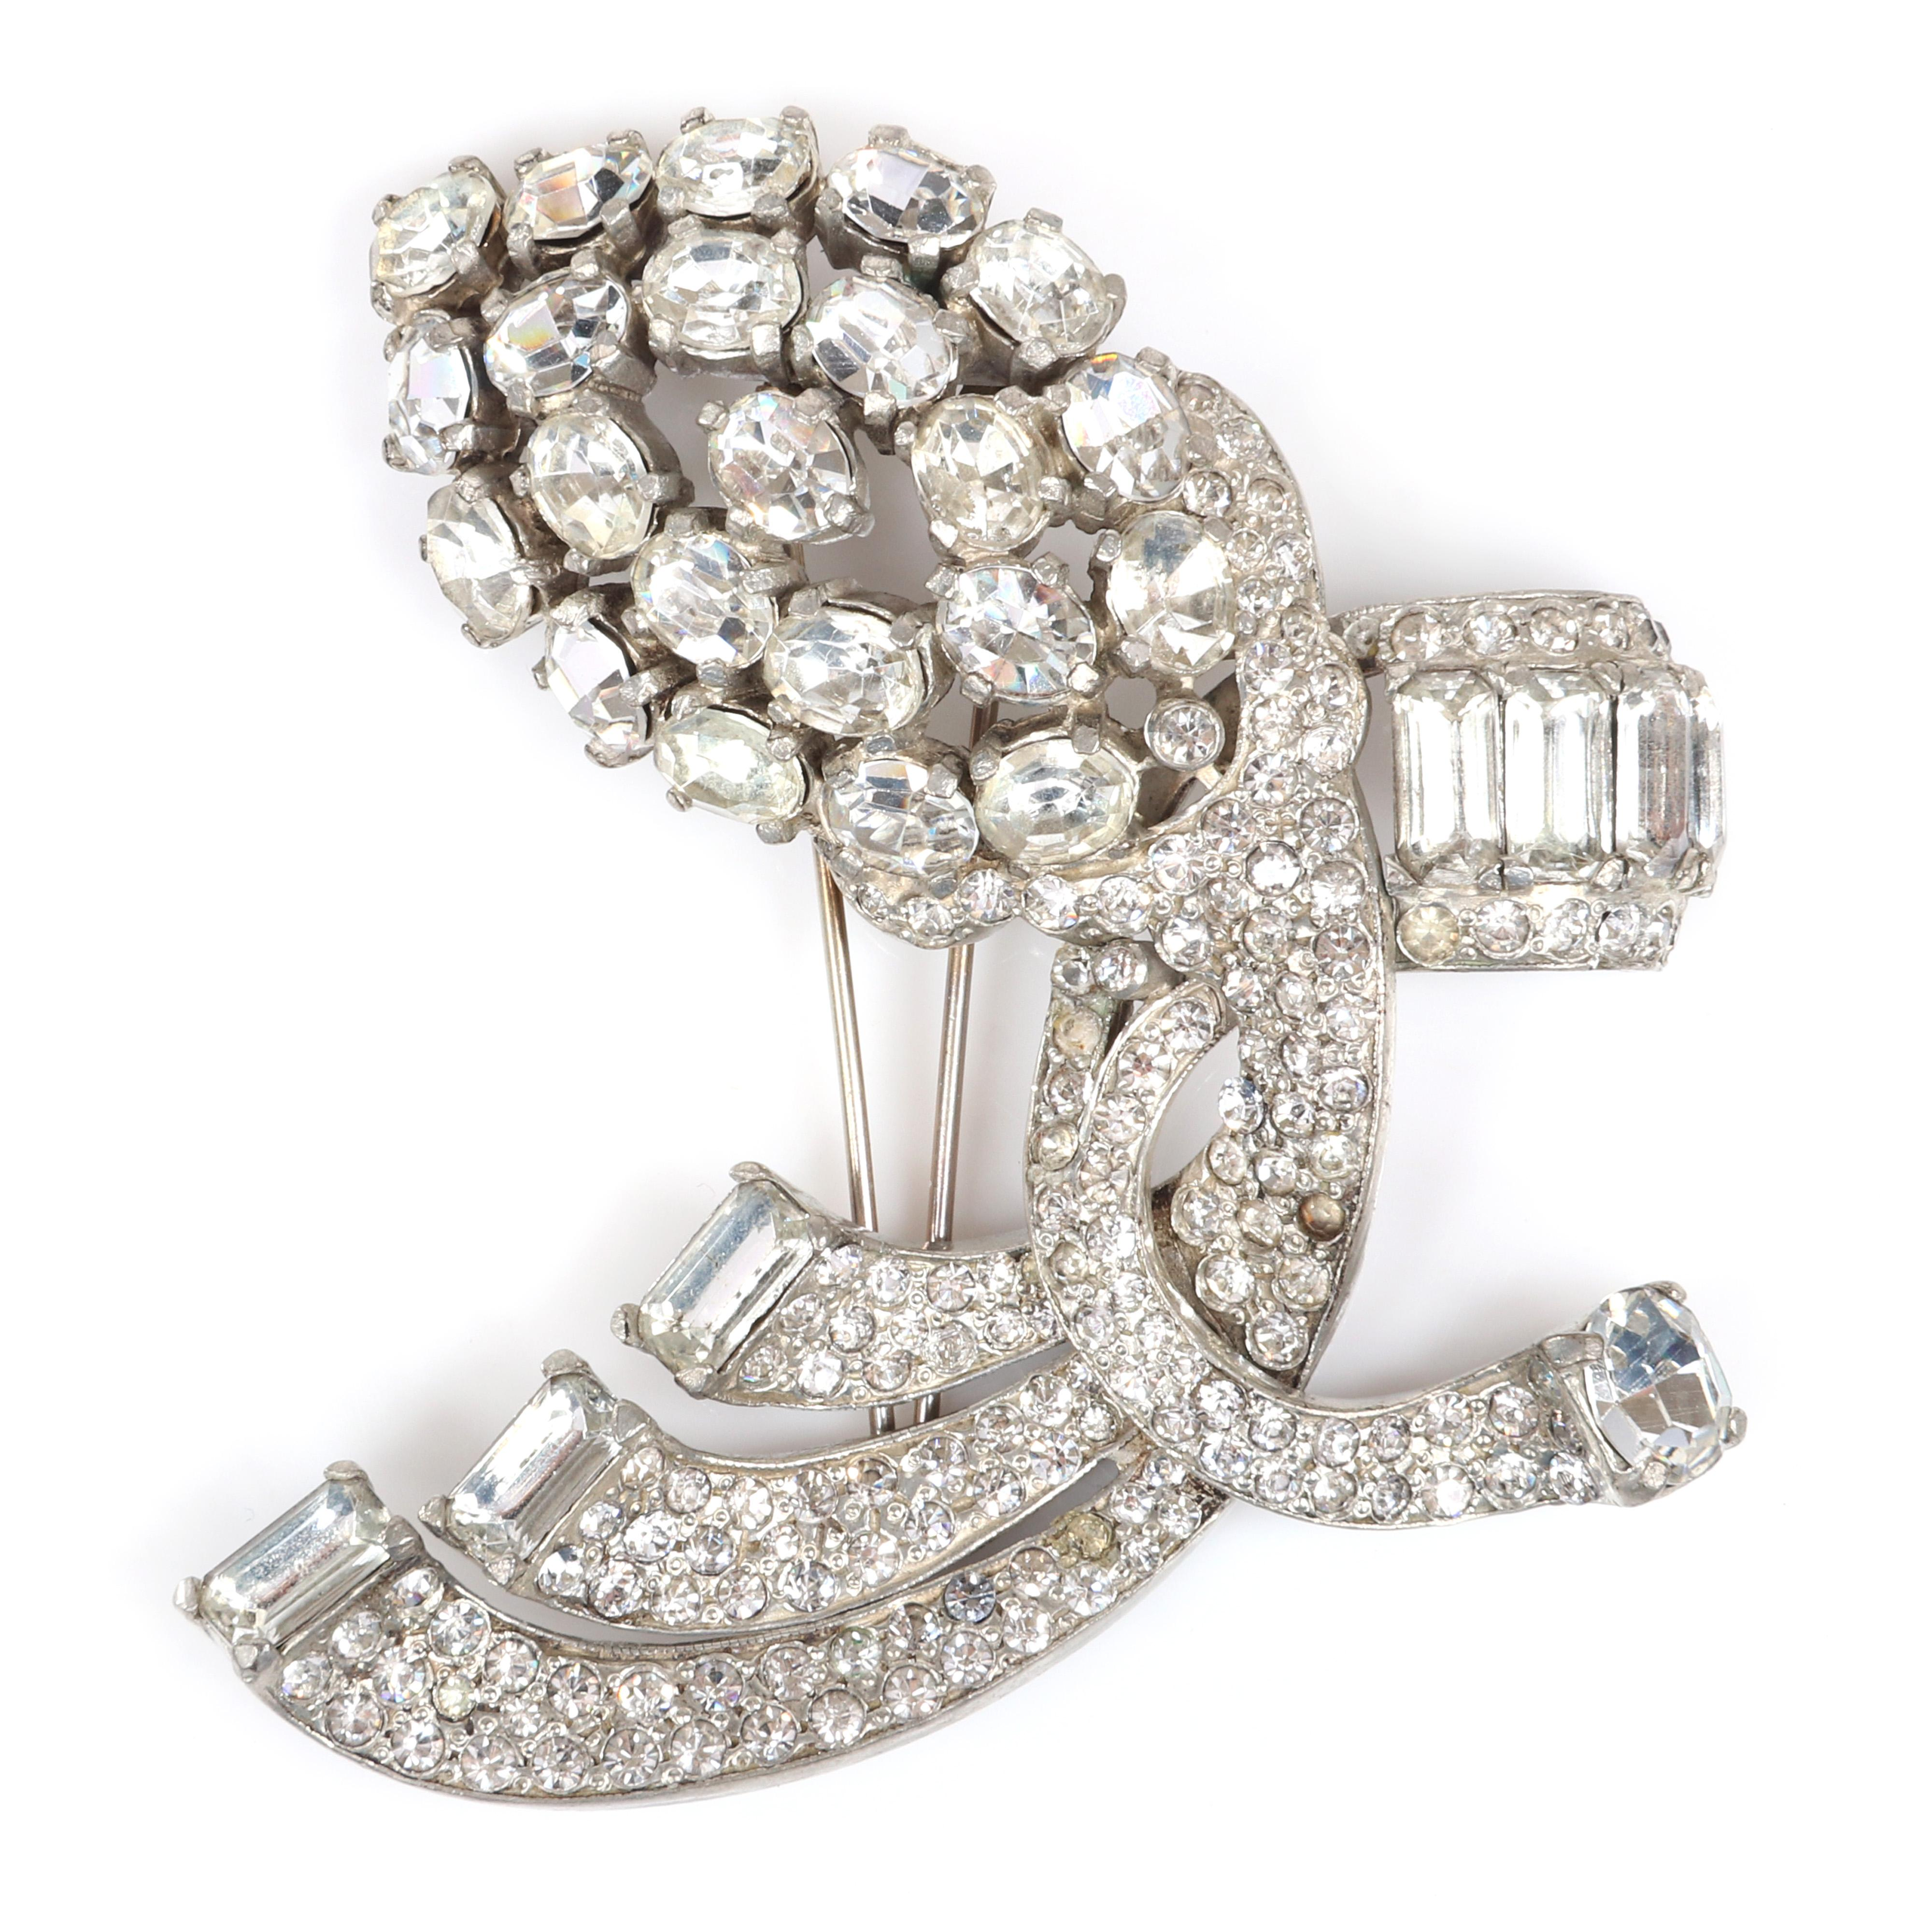 """Eisenberg Original freeform Art Deco diamante stylized floral fur clip with pave and bezel-set rhinestones, baguettes and large faceted crystals, c. 1940. 3 1/2"""" x 3 1/2"""""""